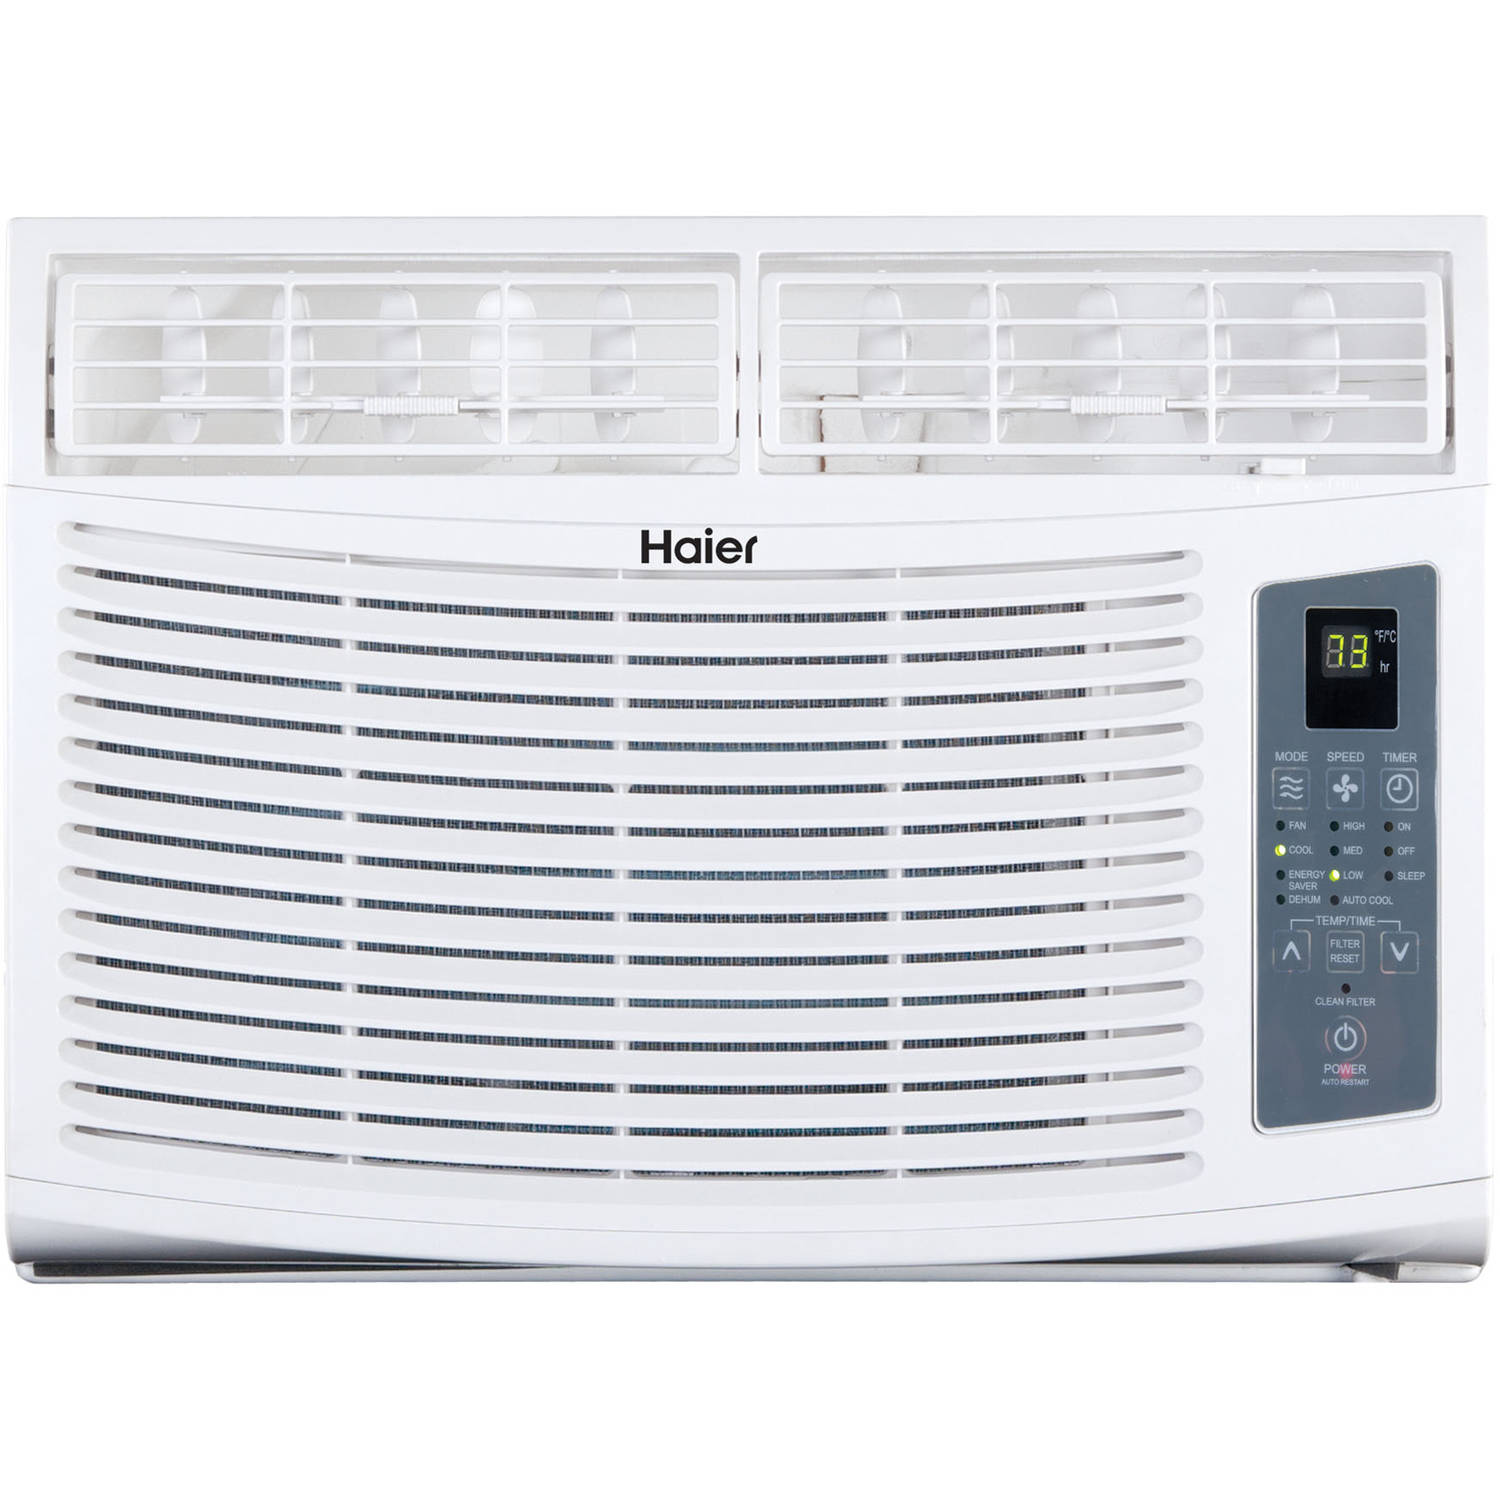 eddc78a3 f0f6 4c28 99e9 ae48fb812ea0_1.8a9a2449b64412d8ab561aa00e9fcd6a haier hwe10xcr l 10,000 btus air conditioner, white walmart com  at aneh.co